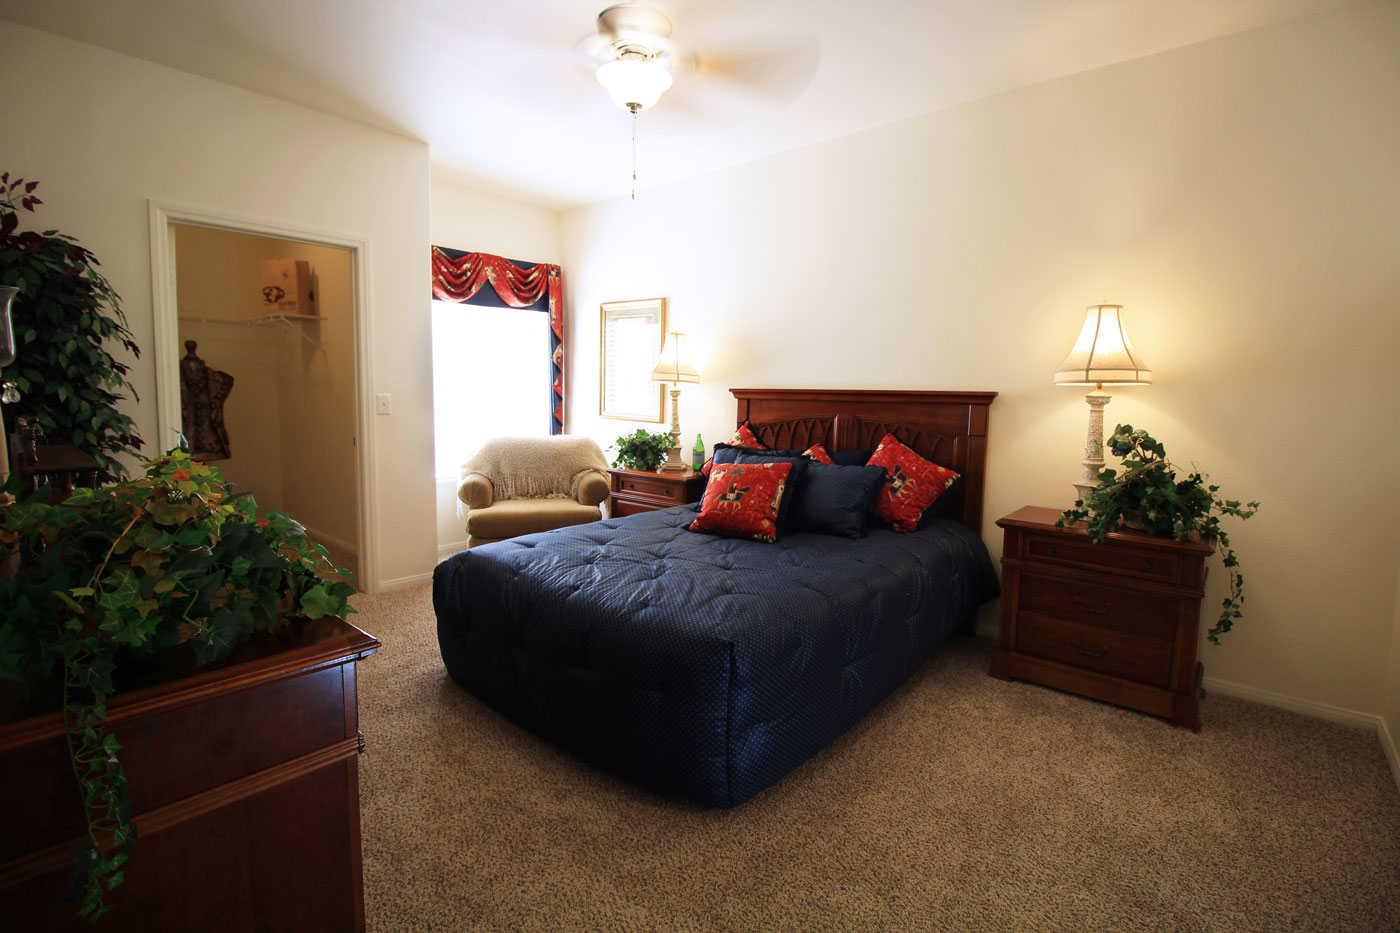 Large bedroom with queen sized bed with navy blue comforter.